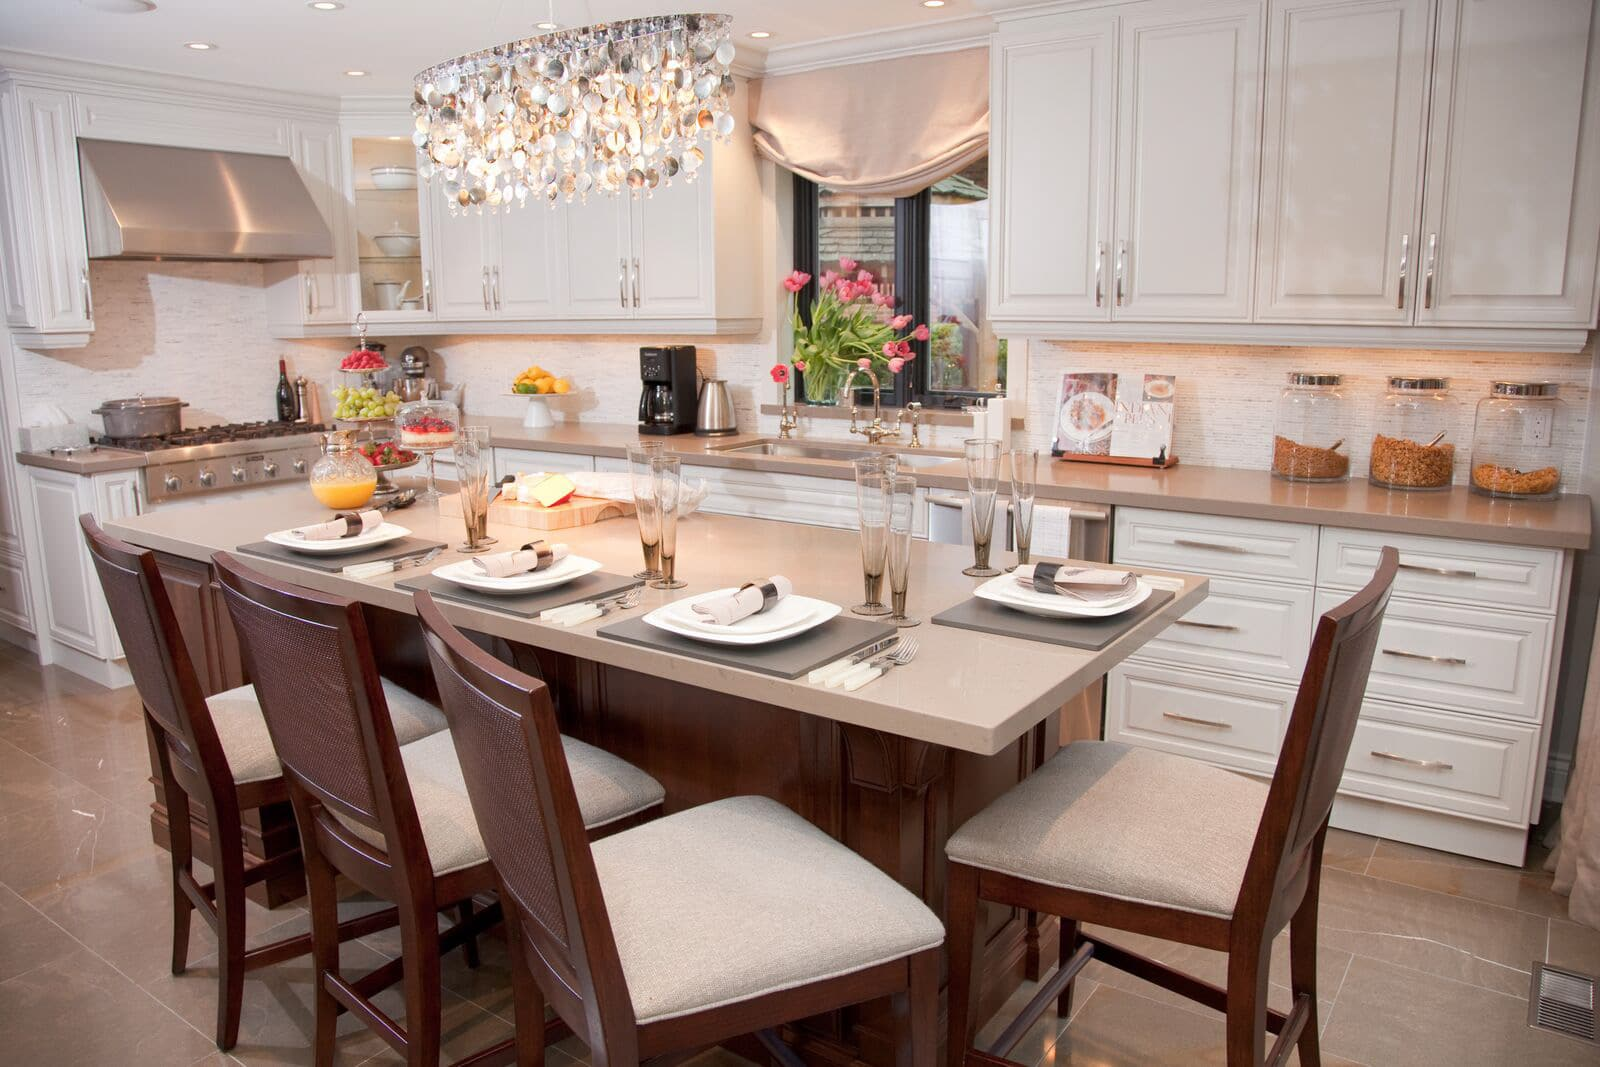 Kitchen with set table featuring white main cabinets, brown cherry wood island, olive quartz countertop, olive marble floor and opsalescent chandelier